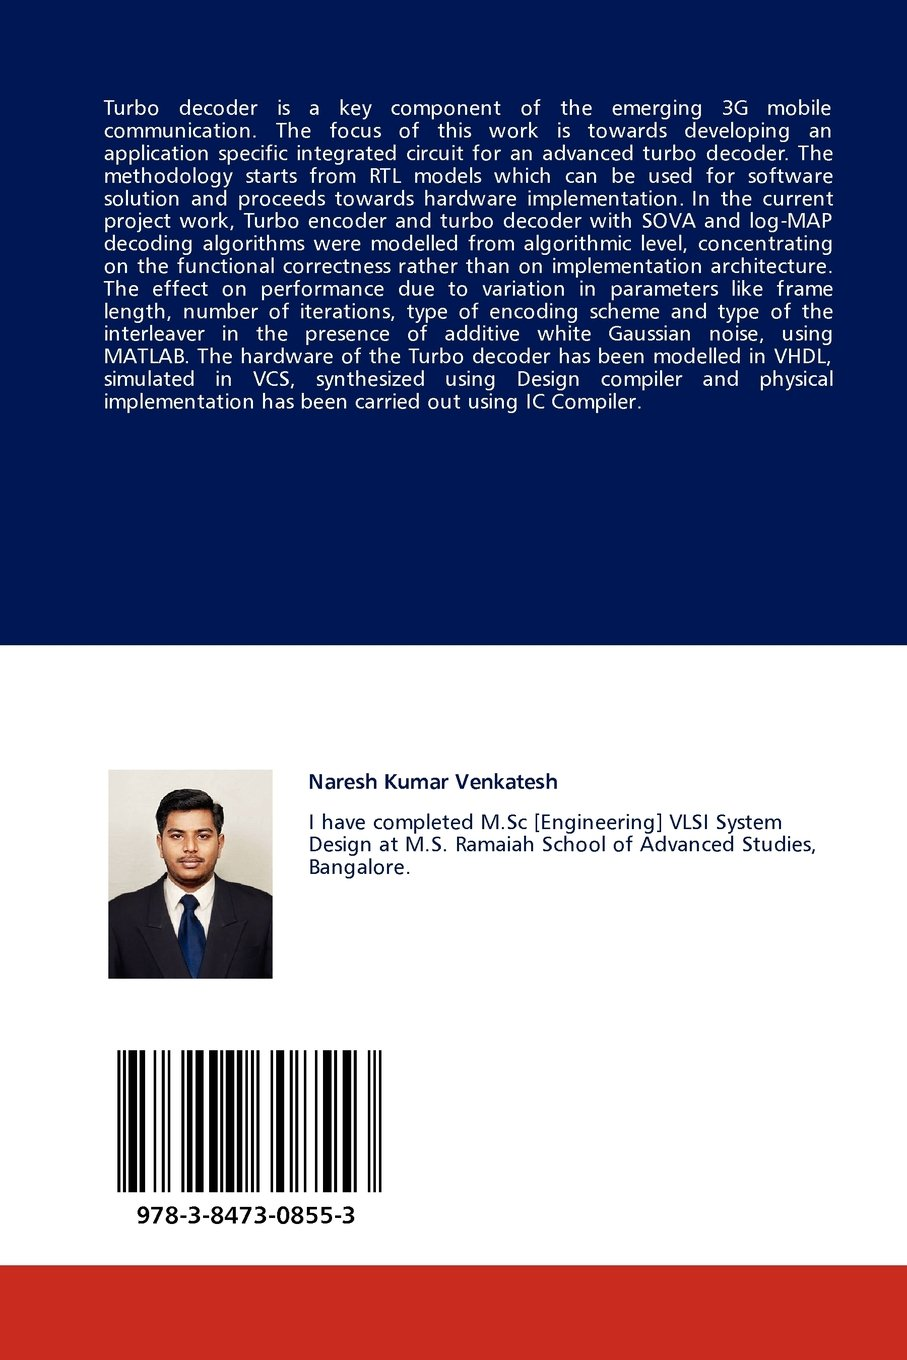 Efficient Hardware Implementation of an Advanced Turbo Decoder: An ASIC Implementation: Naresh Kumar Venkatesh: 9783847308553: Amazon.com: Books